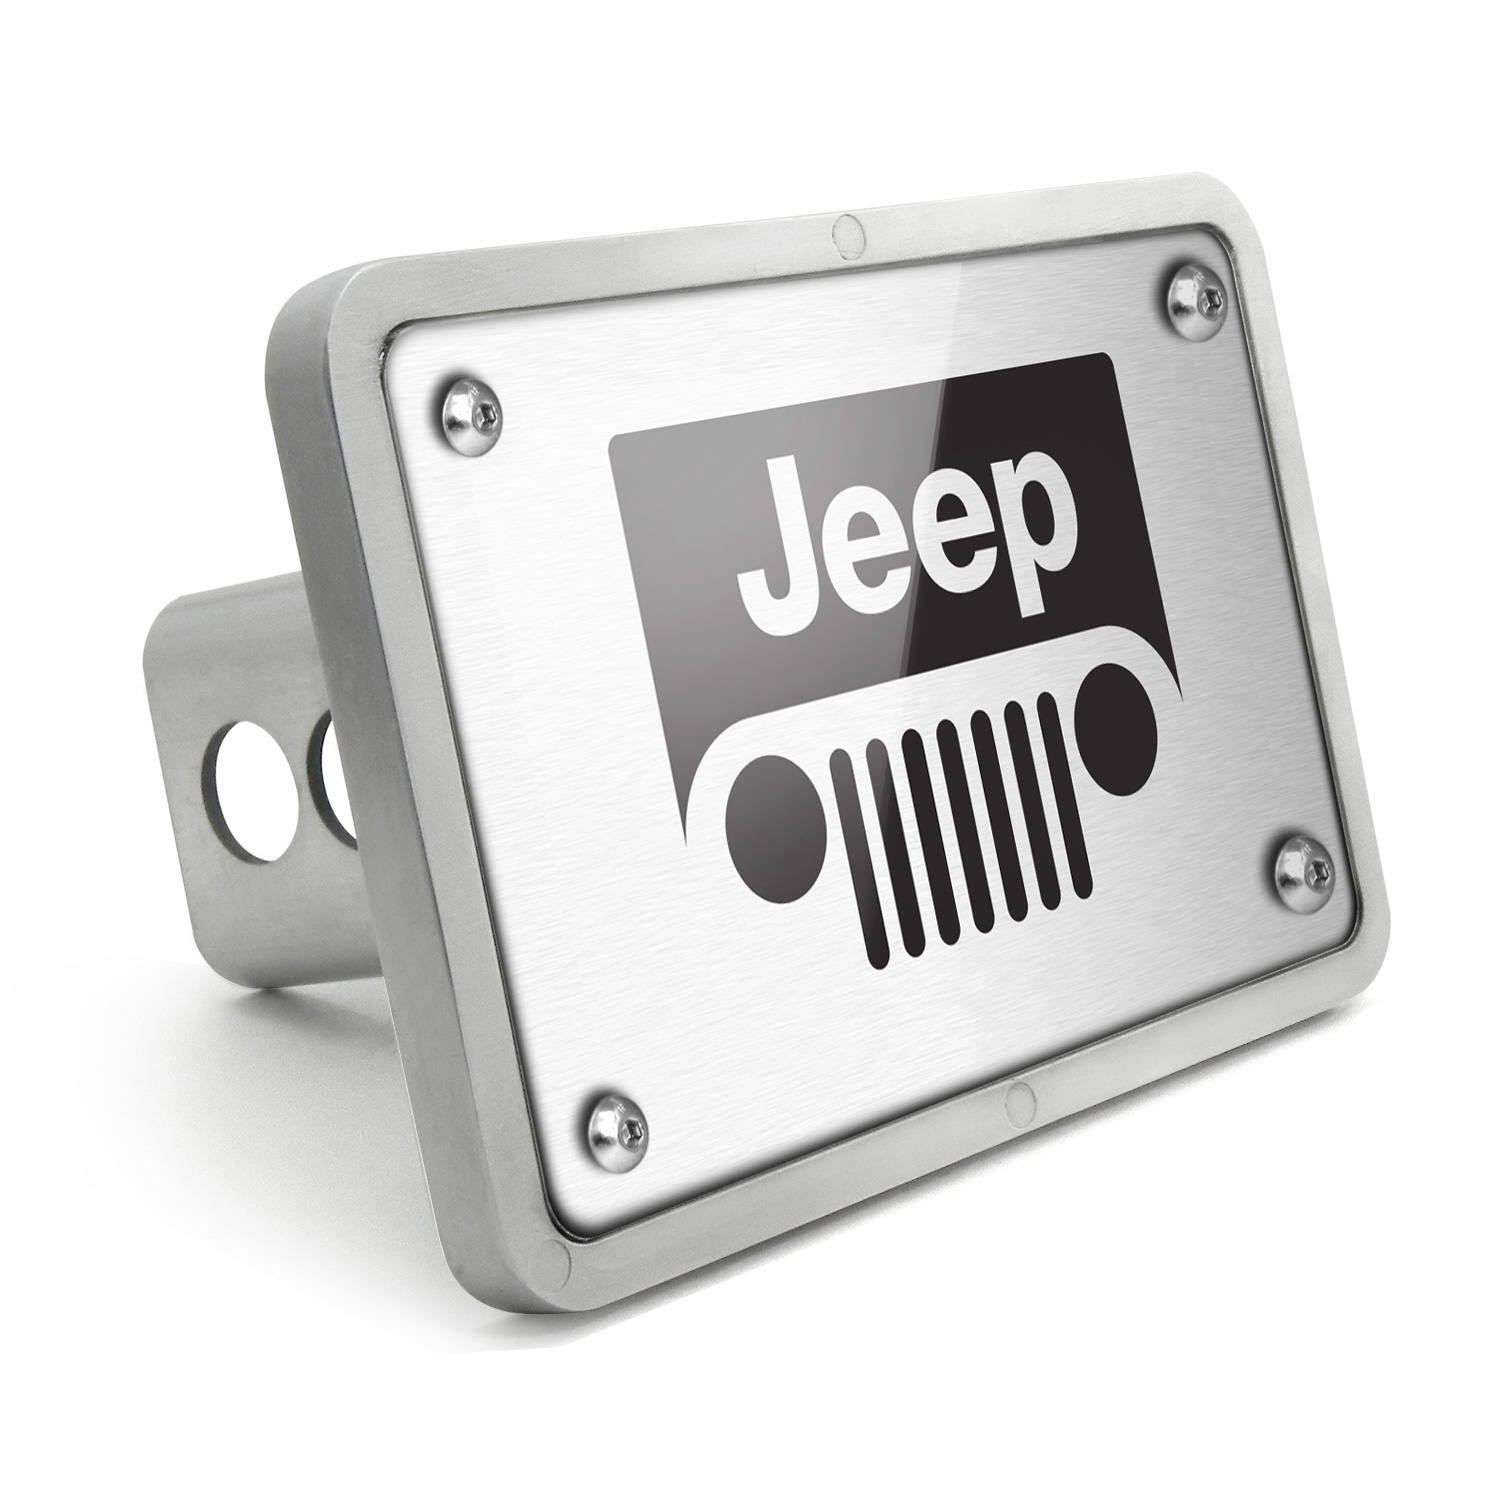 Jeep Grill UV Graphic Brushed Silver Billet Aluminum 2 inch Tow Hitch Cover